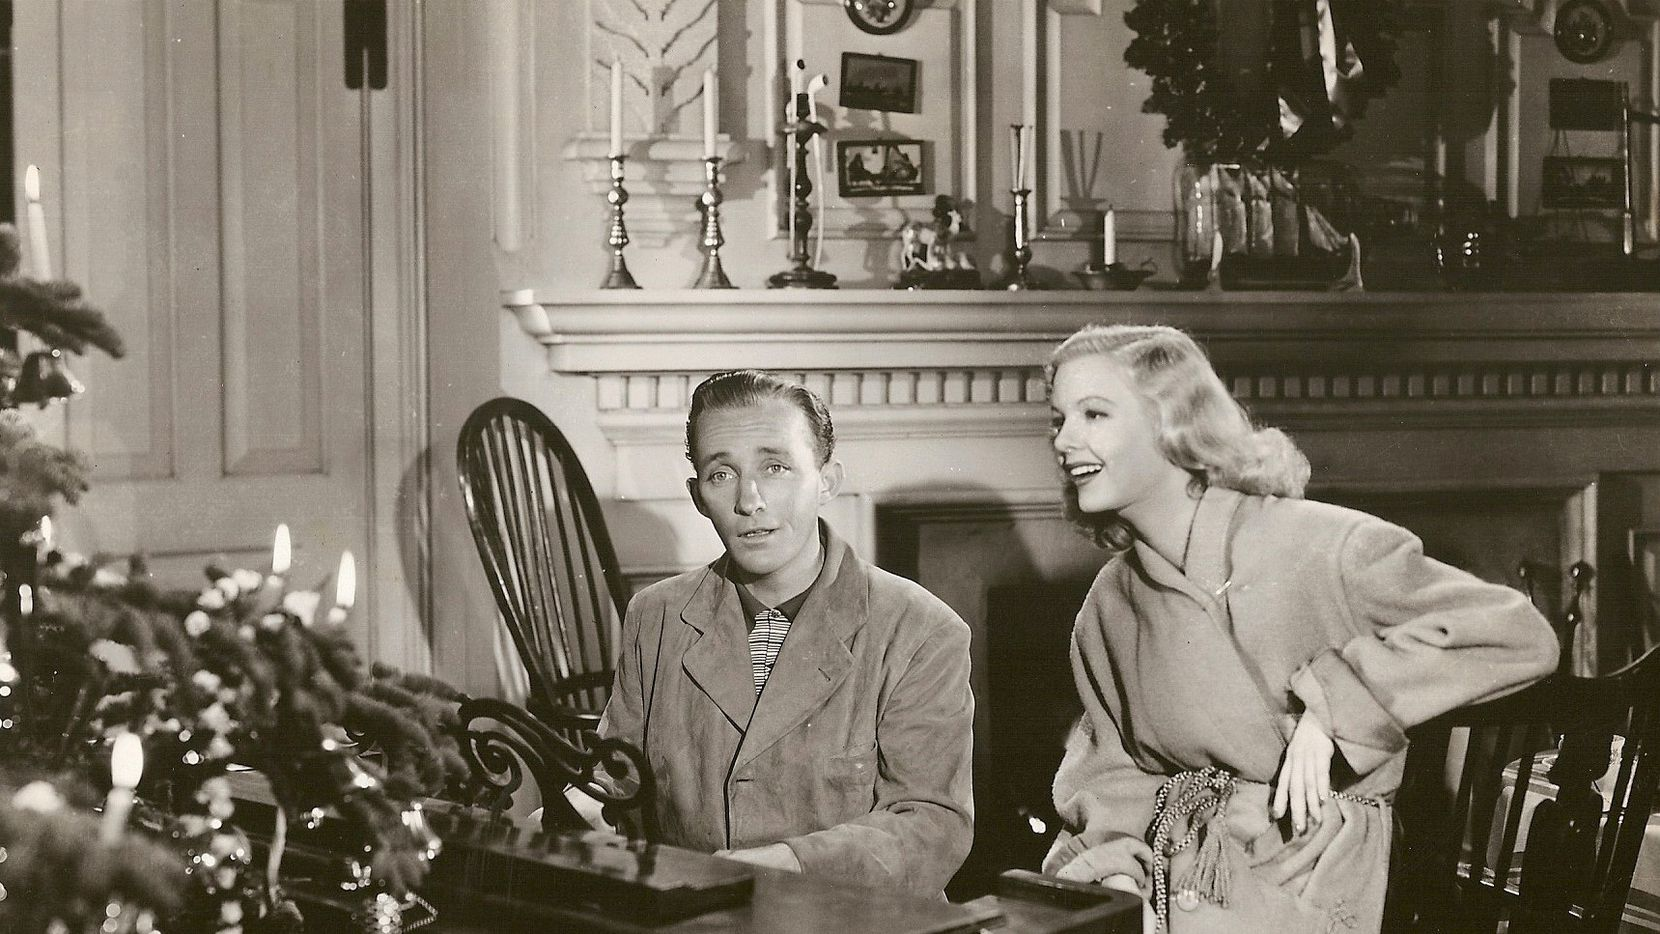 """Bing Crosby and Marjorie Reynolds perform  """"White Christmas"""" in Holiday Inn.  From Bing Crosby: Swinging on a Star, by Gary Giddins."""